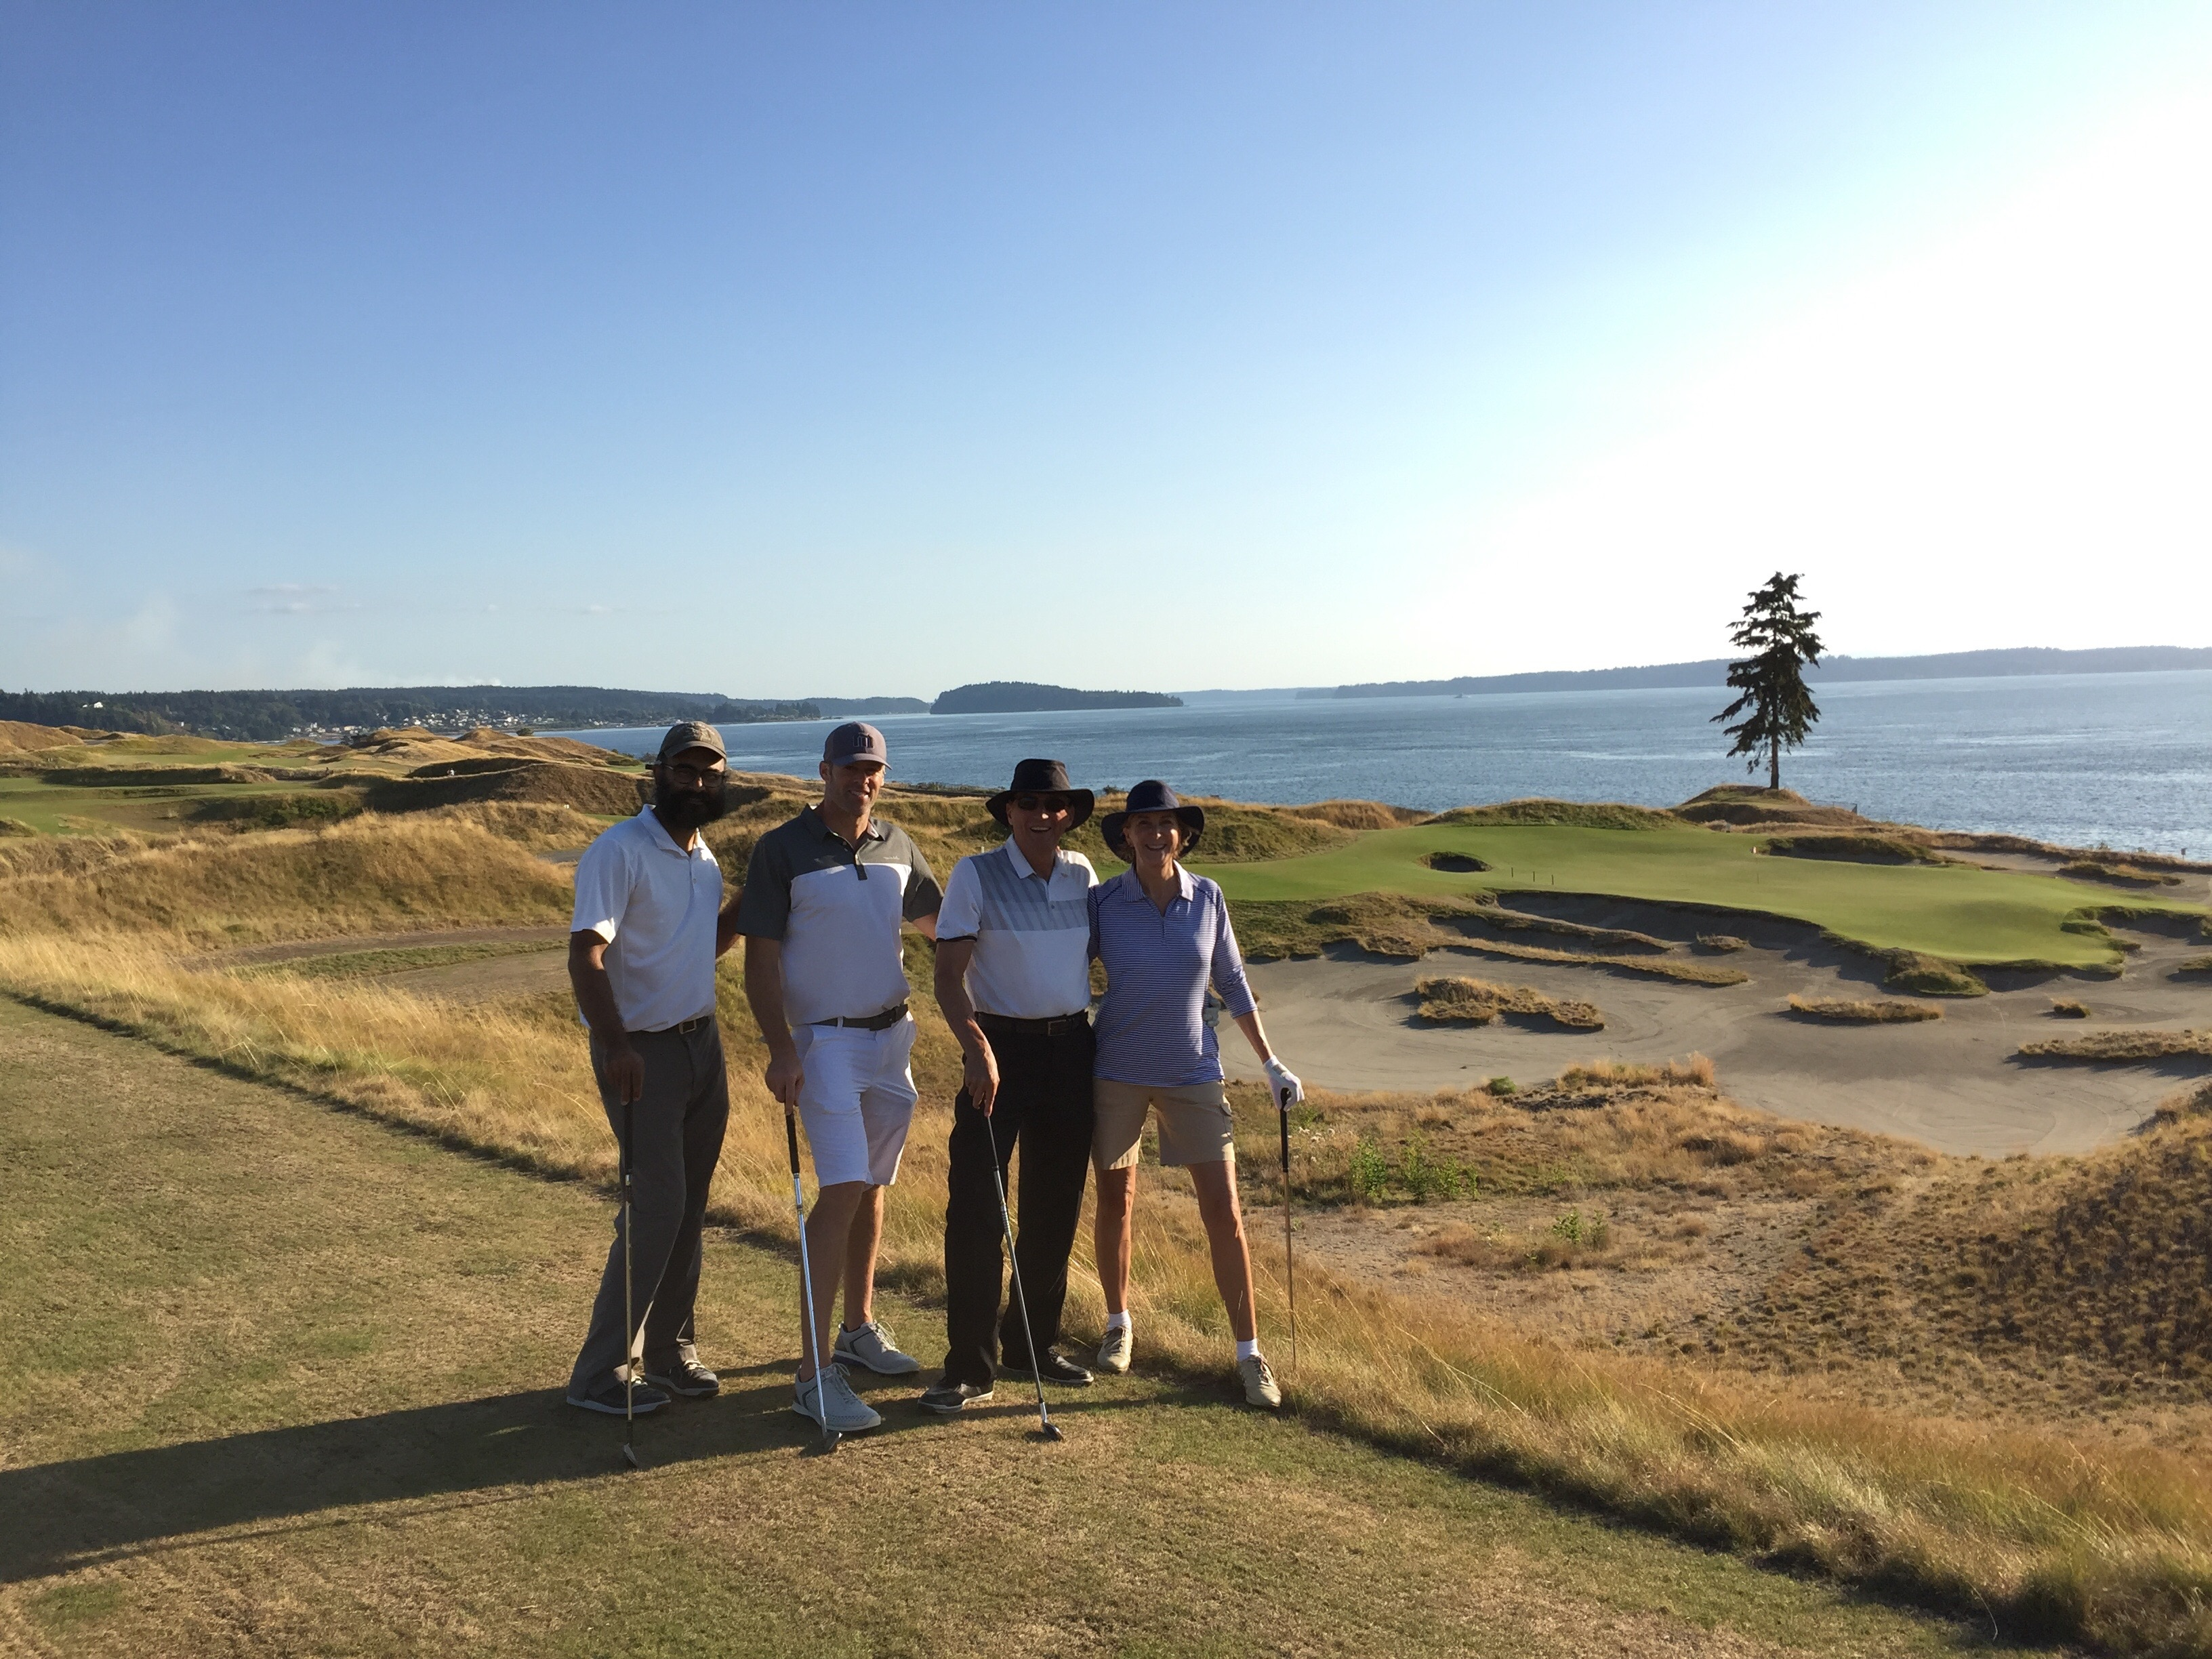 Harp, Dave, Mike and I by the lone tree at Chambers Bay.